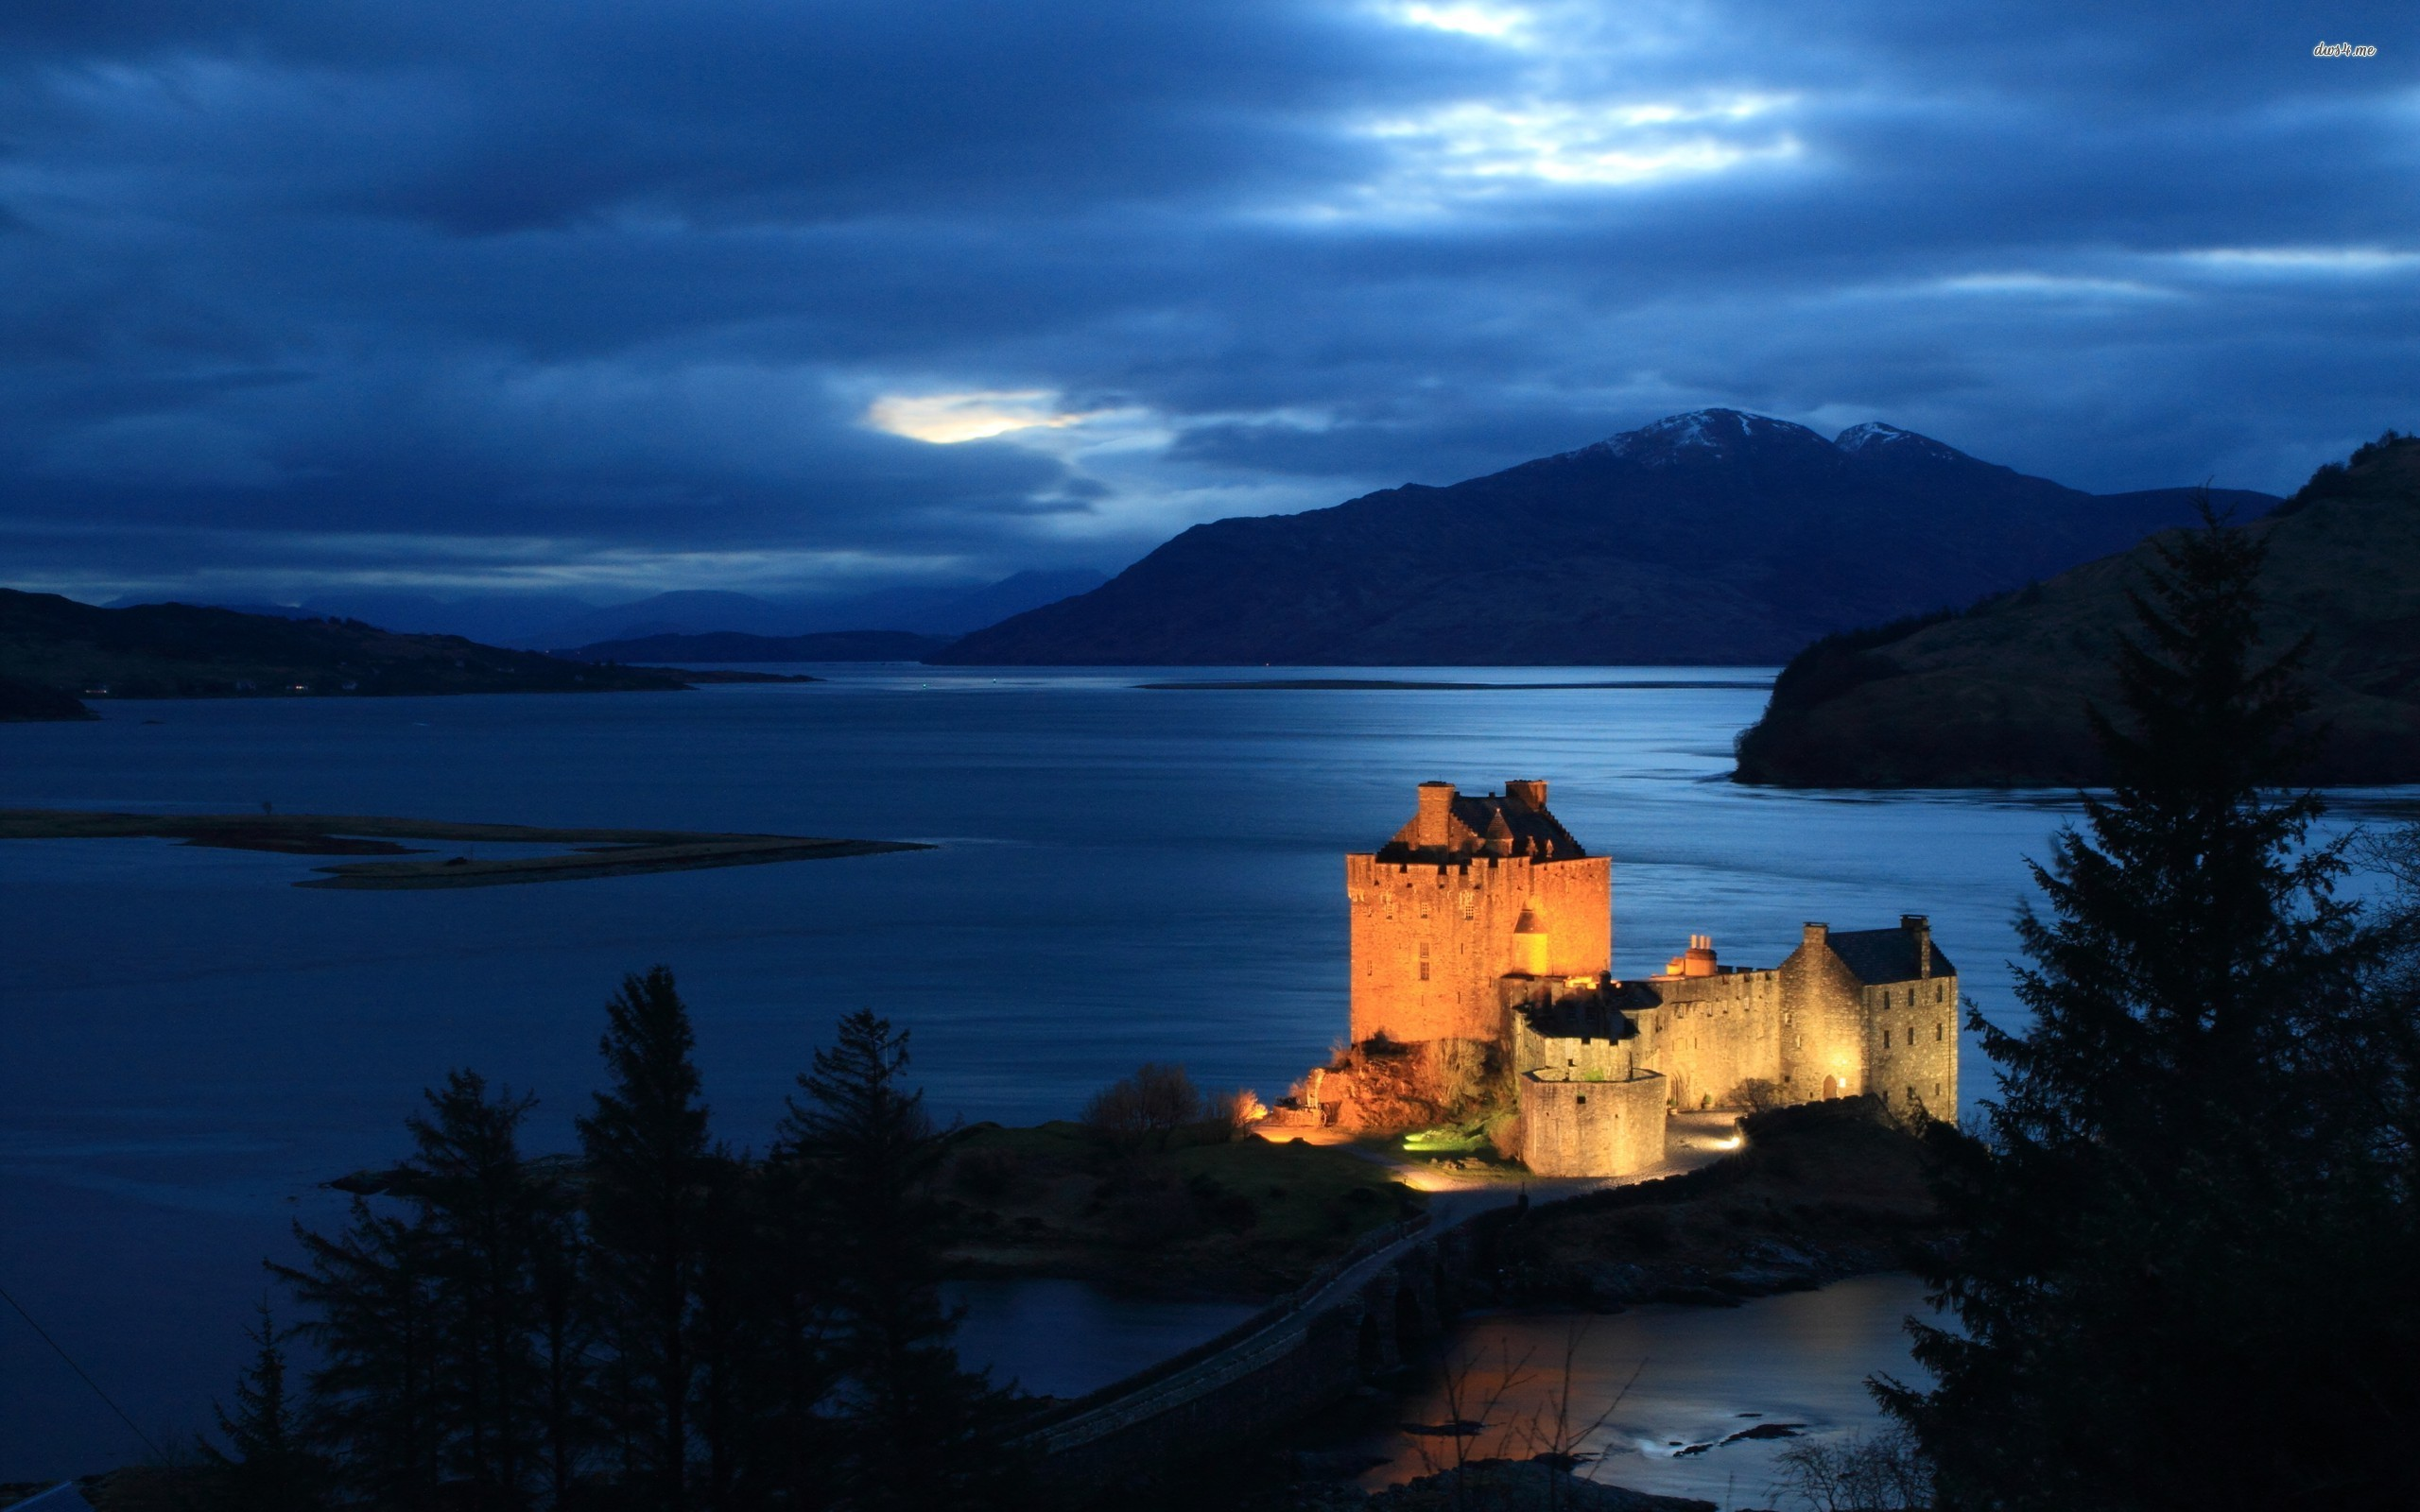 other castles, fortresses and tower houses, drop by Visit Scotland .